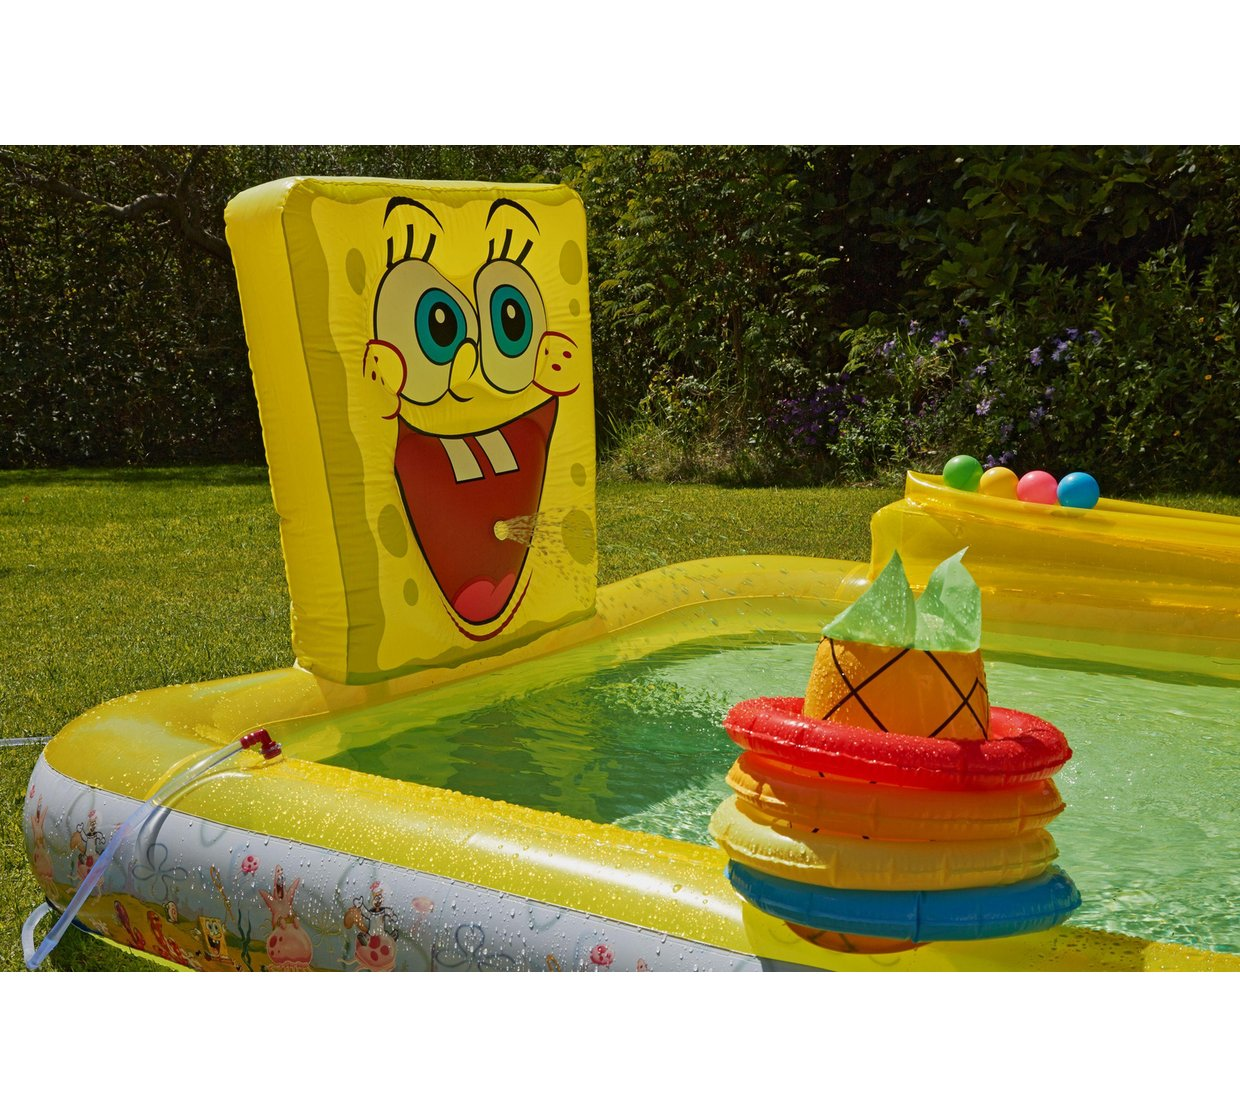 spongebob squarepants activity pool 8ftx 5ft argos smug deals uk